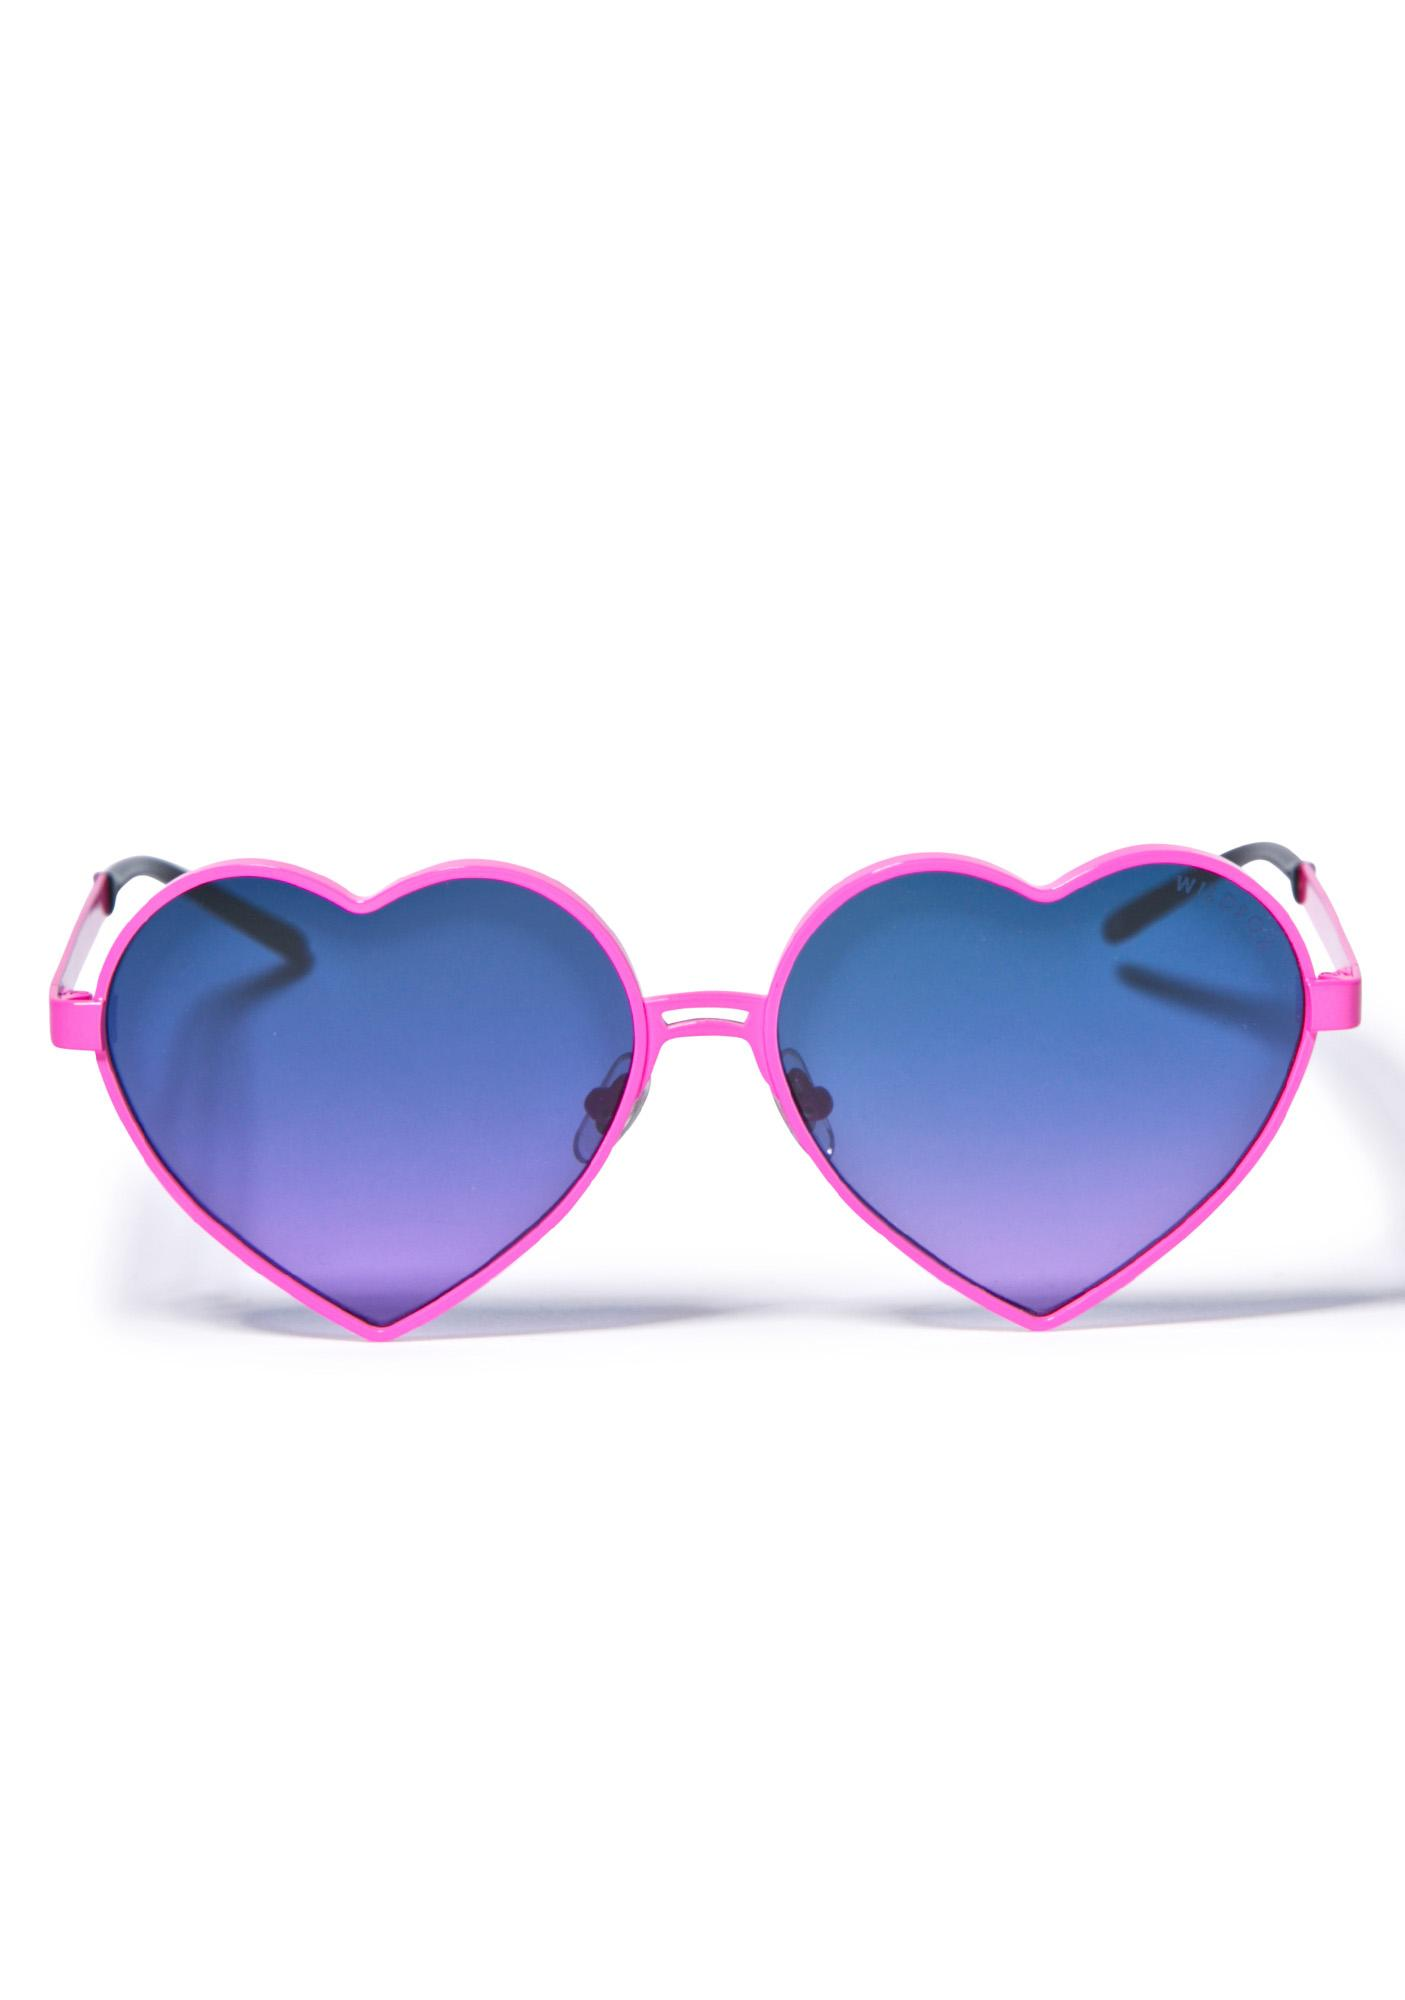 Wildfox Couture Lolita Sunglasses